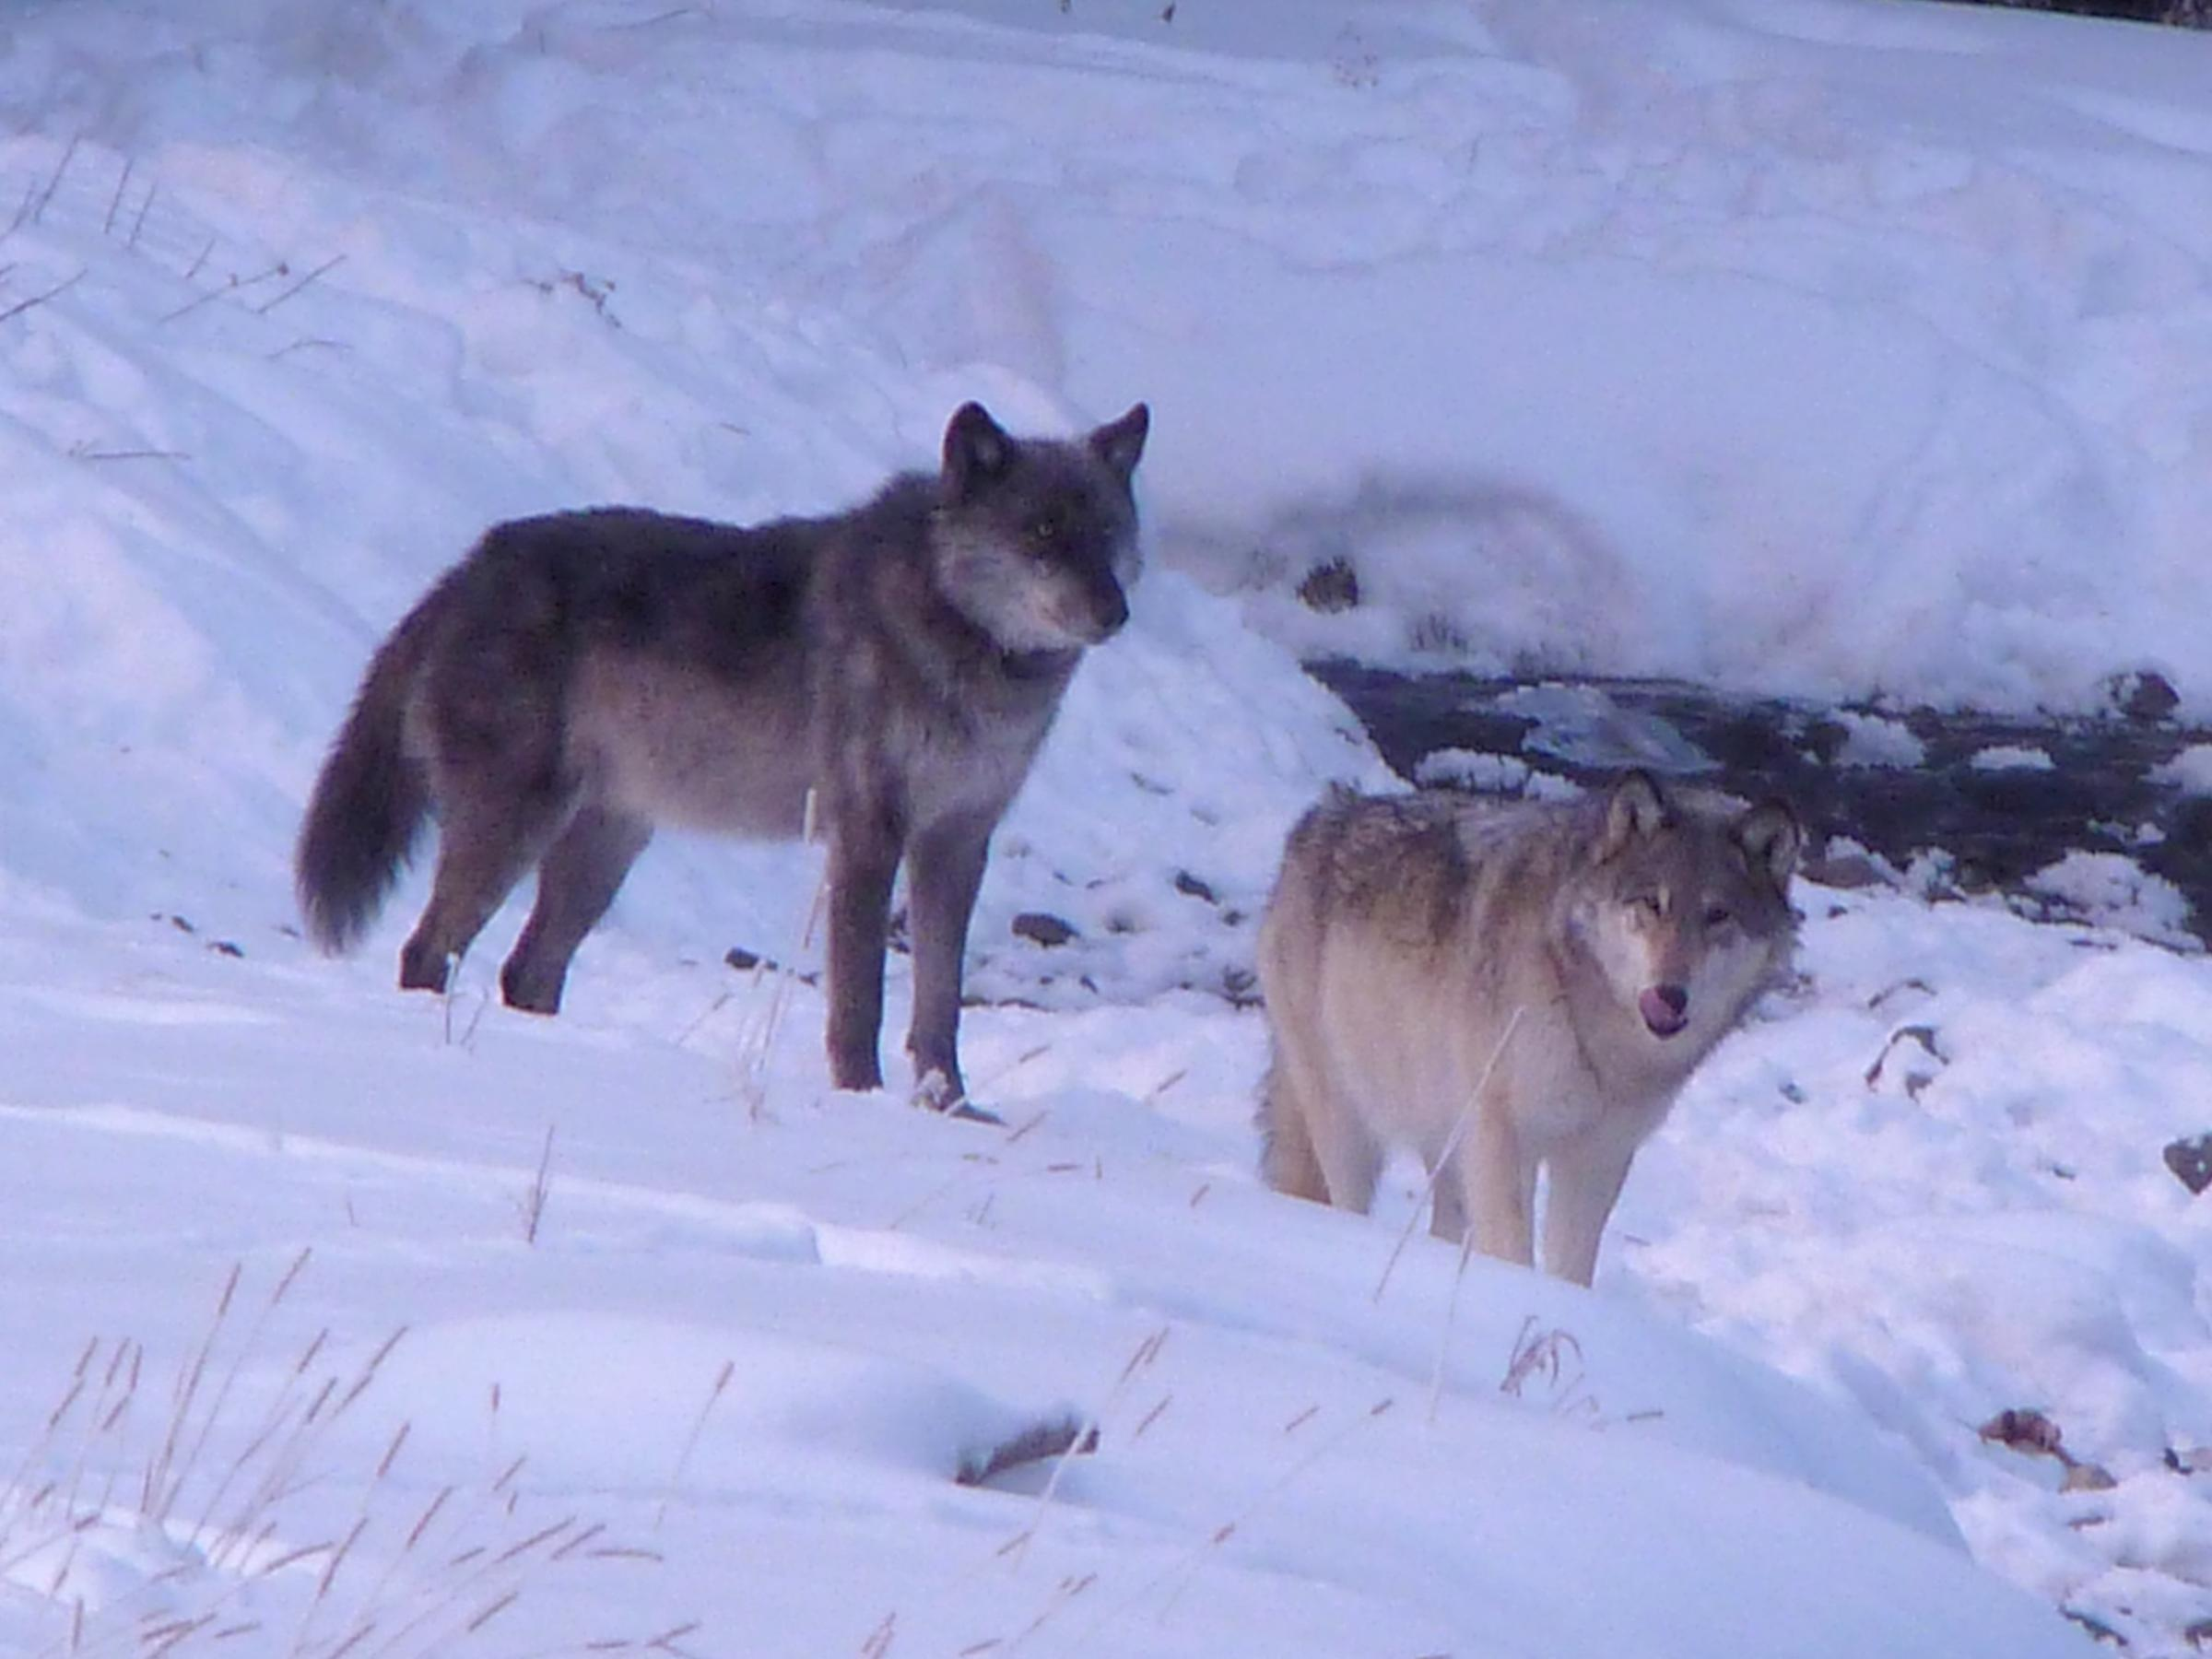 Carl Safina Talks Of Wild Wolves And Bottle-Fed Squirrels